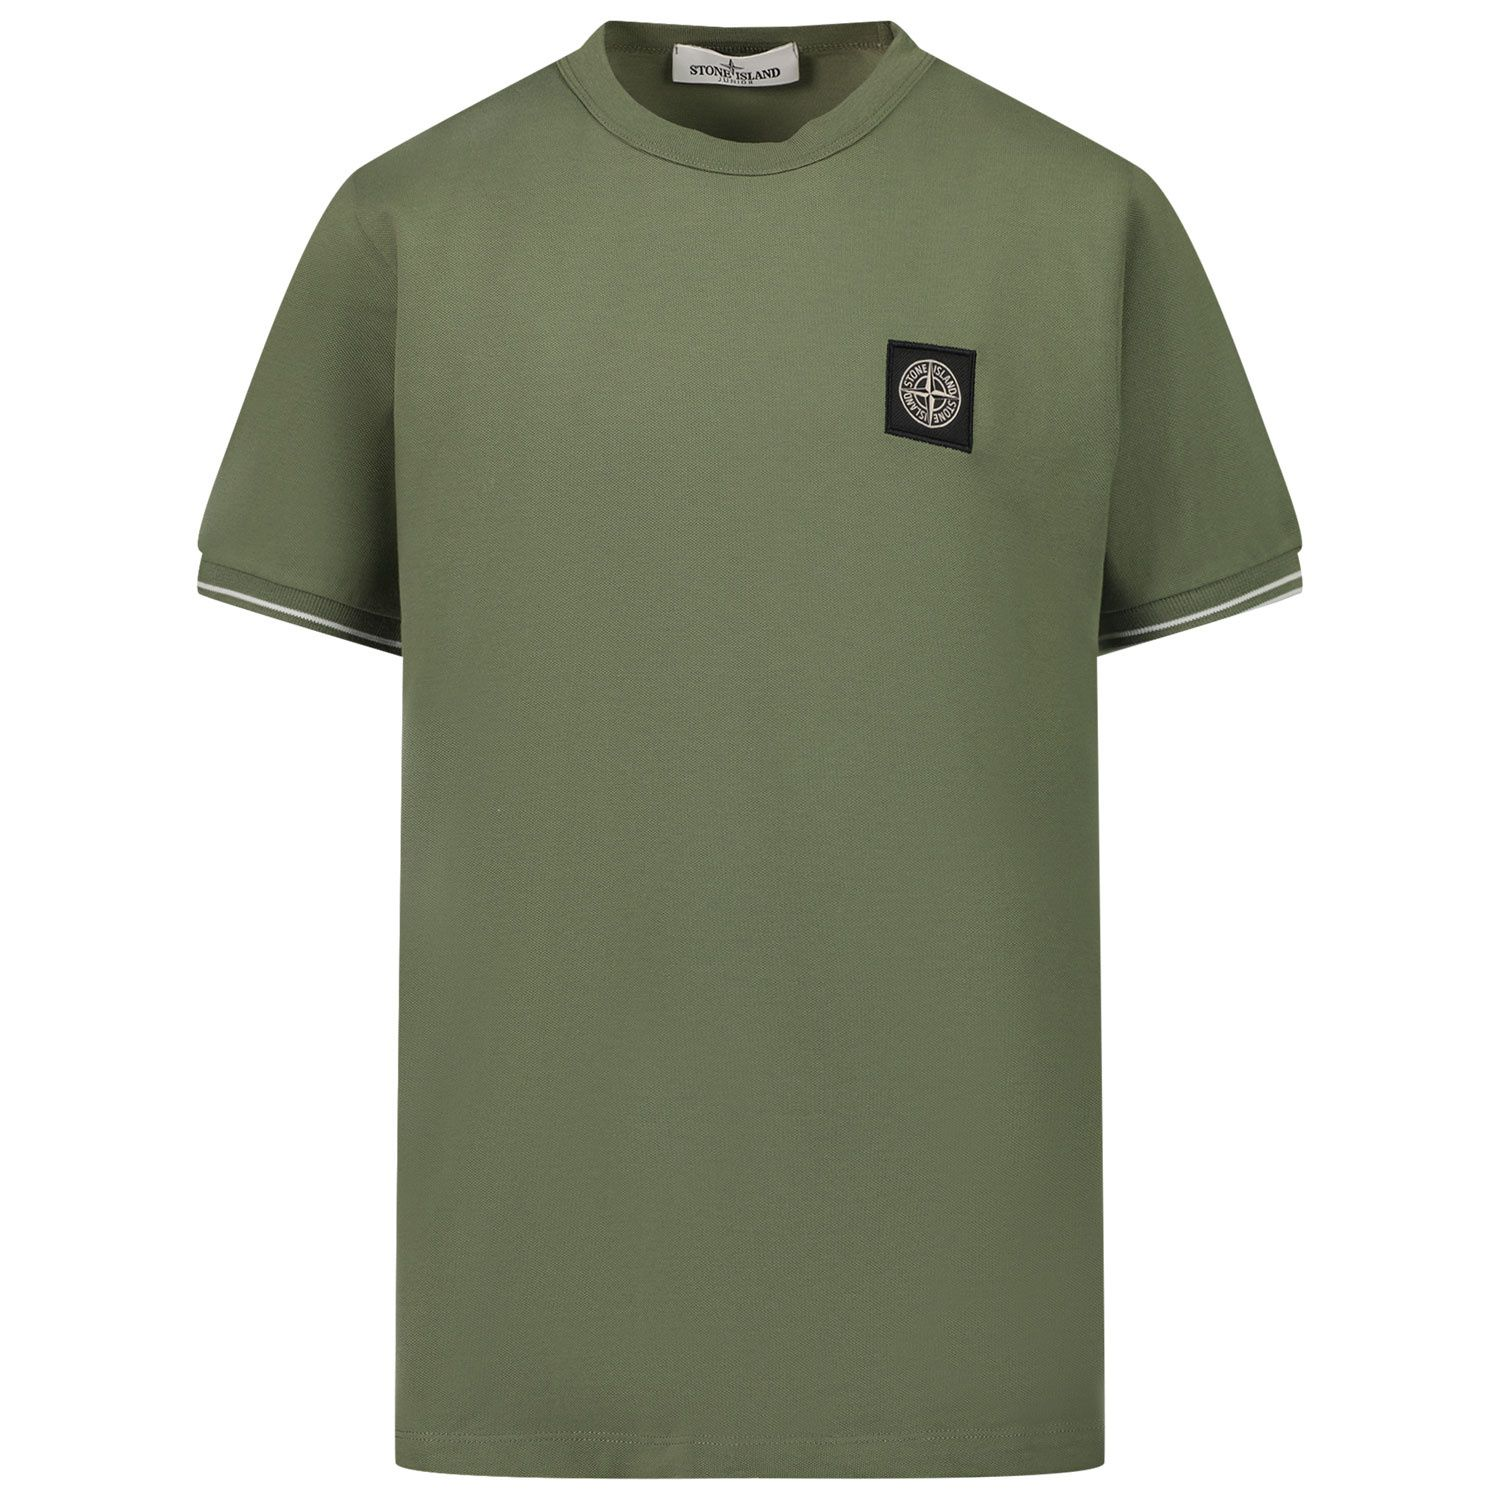 Picture of Stone Island 20748 kids t-shirt dark green